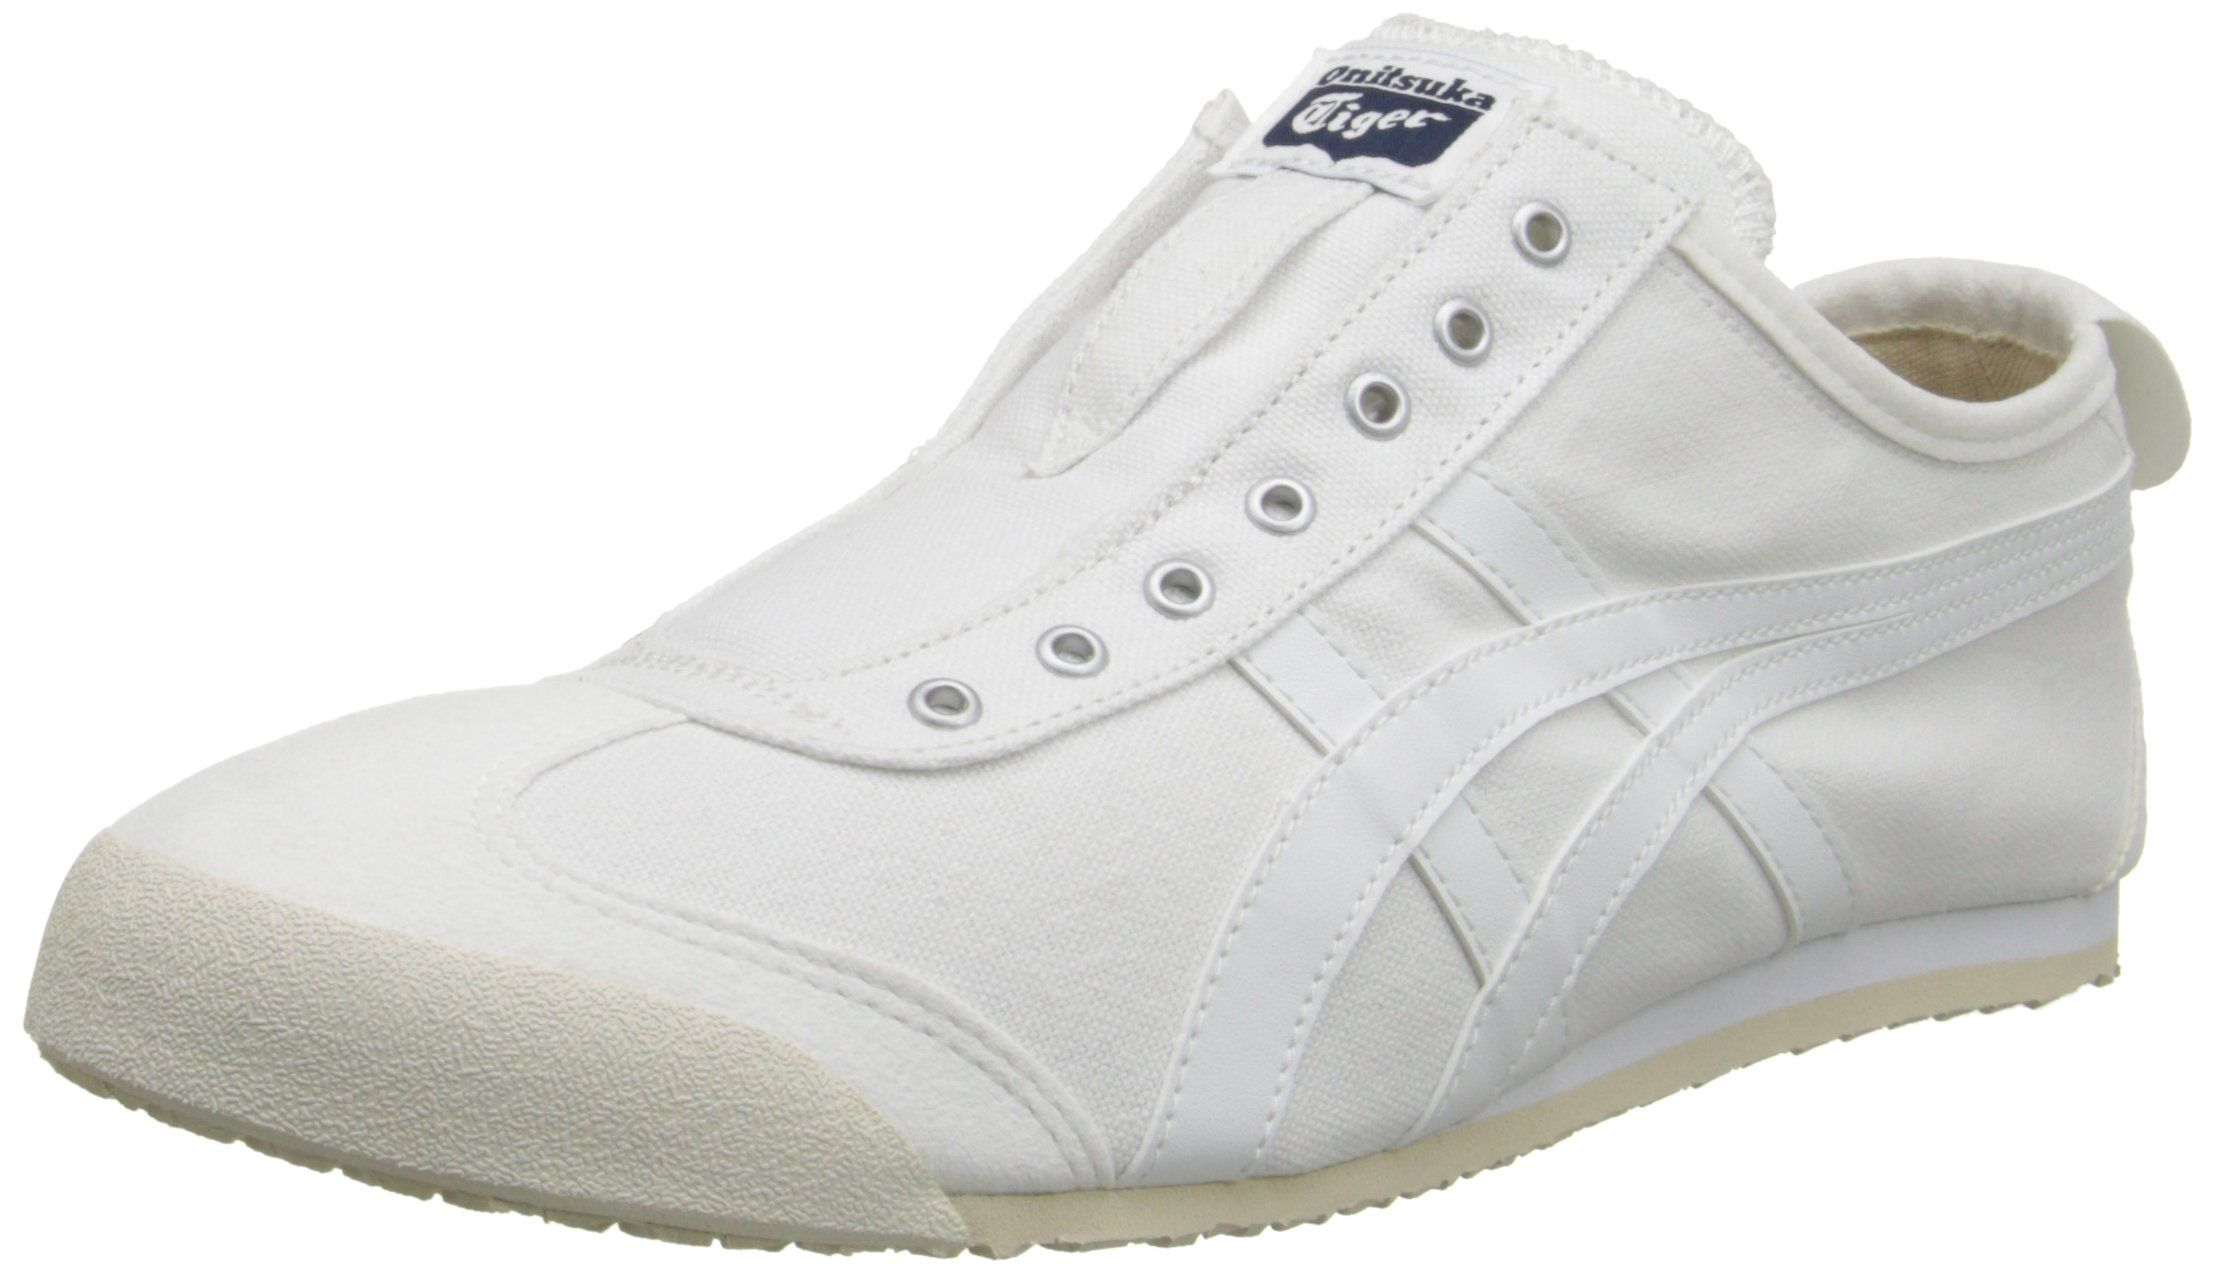 The Best Slip On Shoes For Women Onitsuka Tiger Sneakers Slip On Shoes